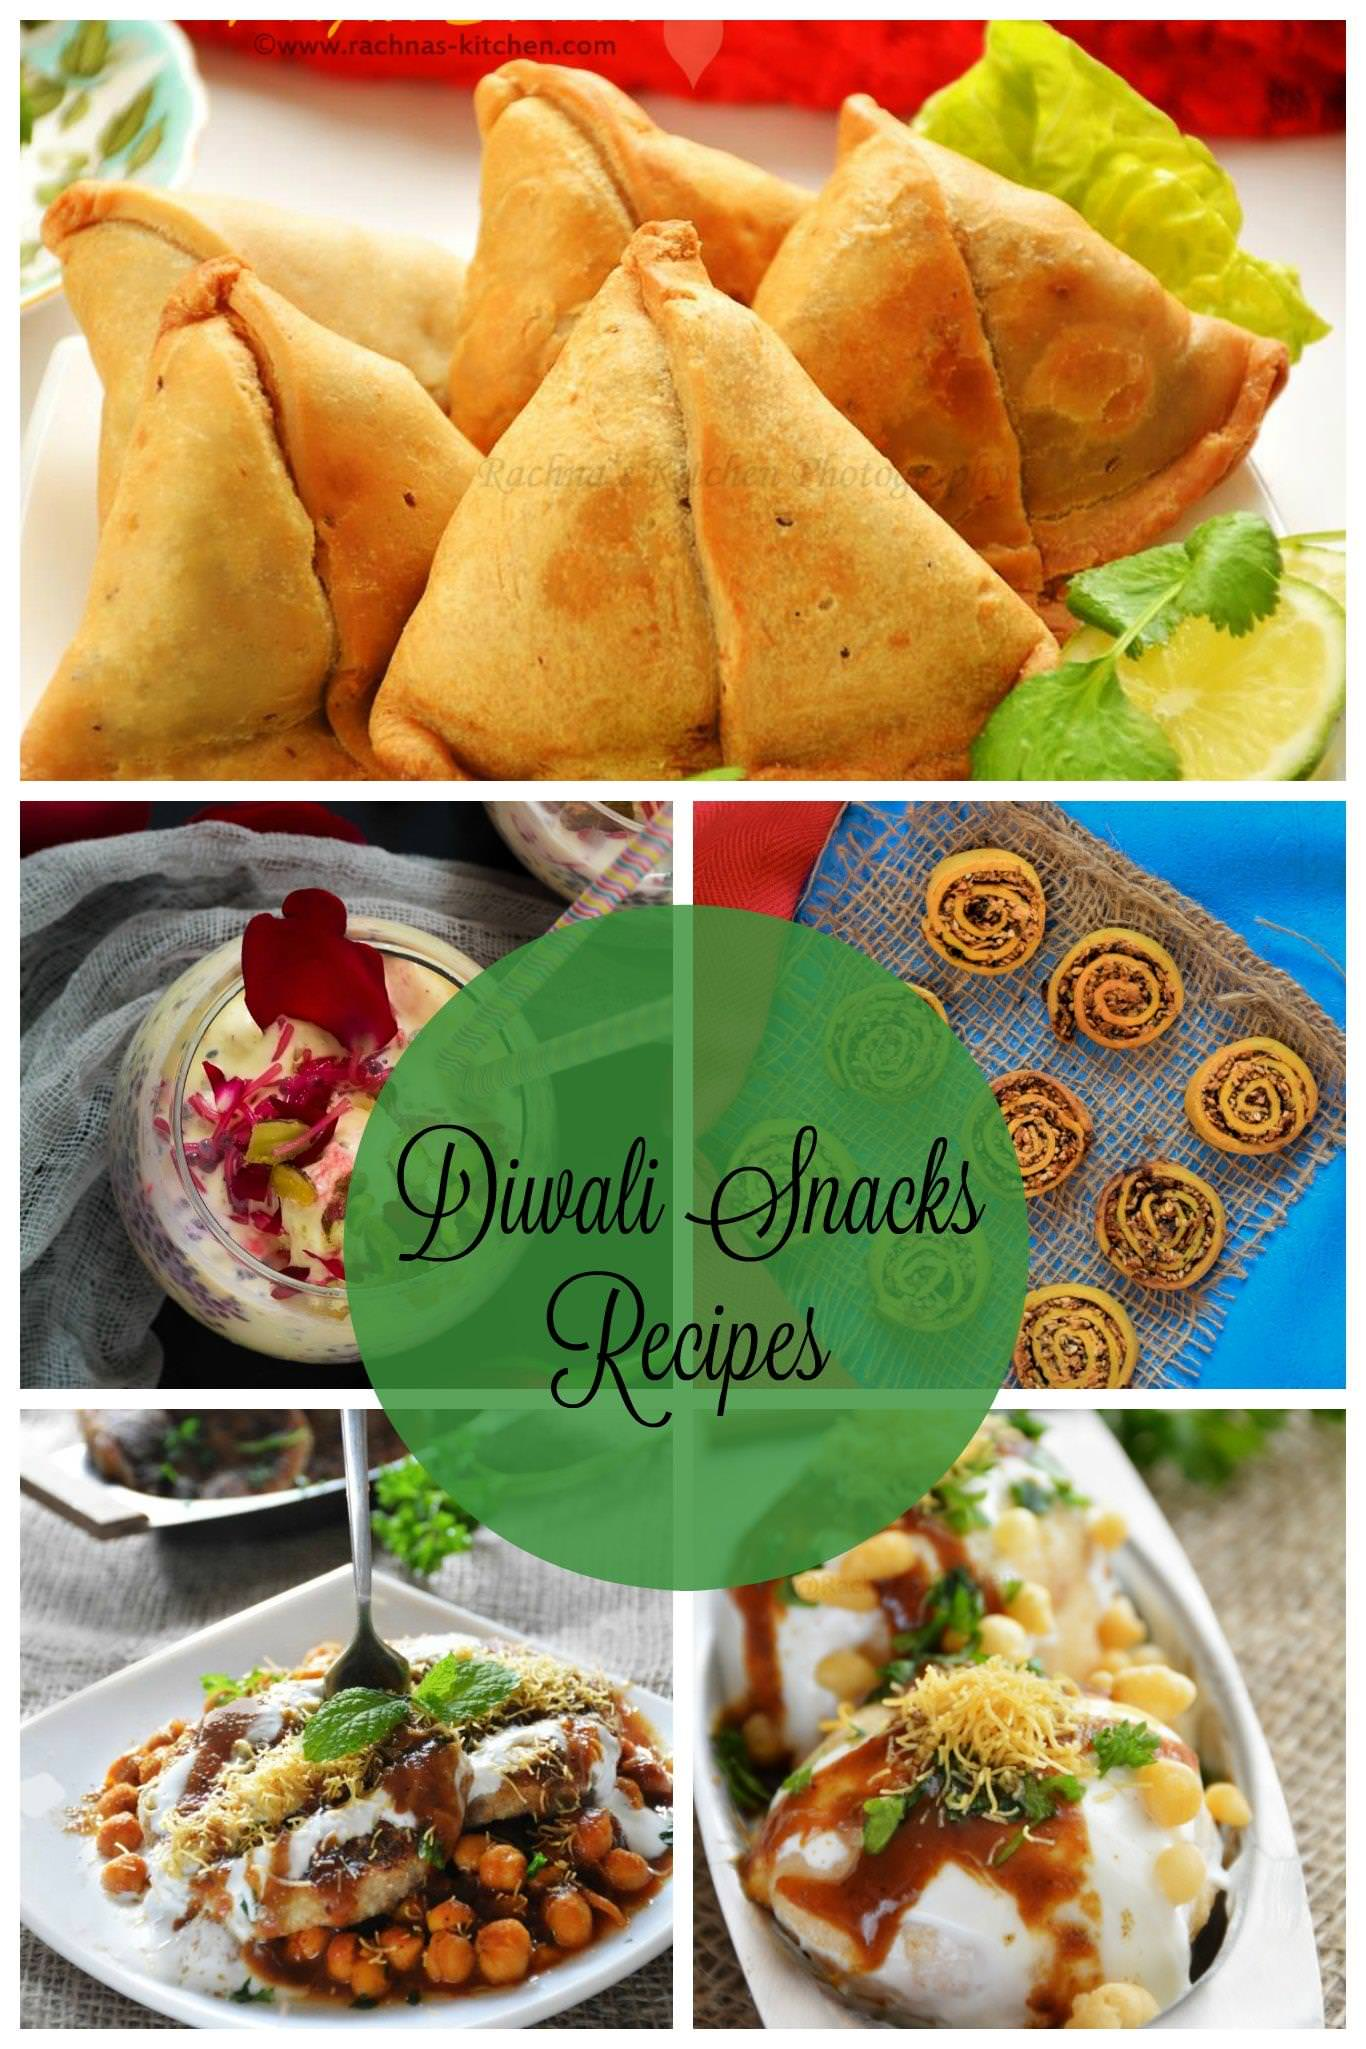 Diwali recipes 2017 | Diwali snacks recipes